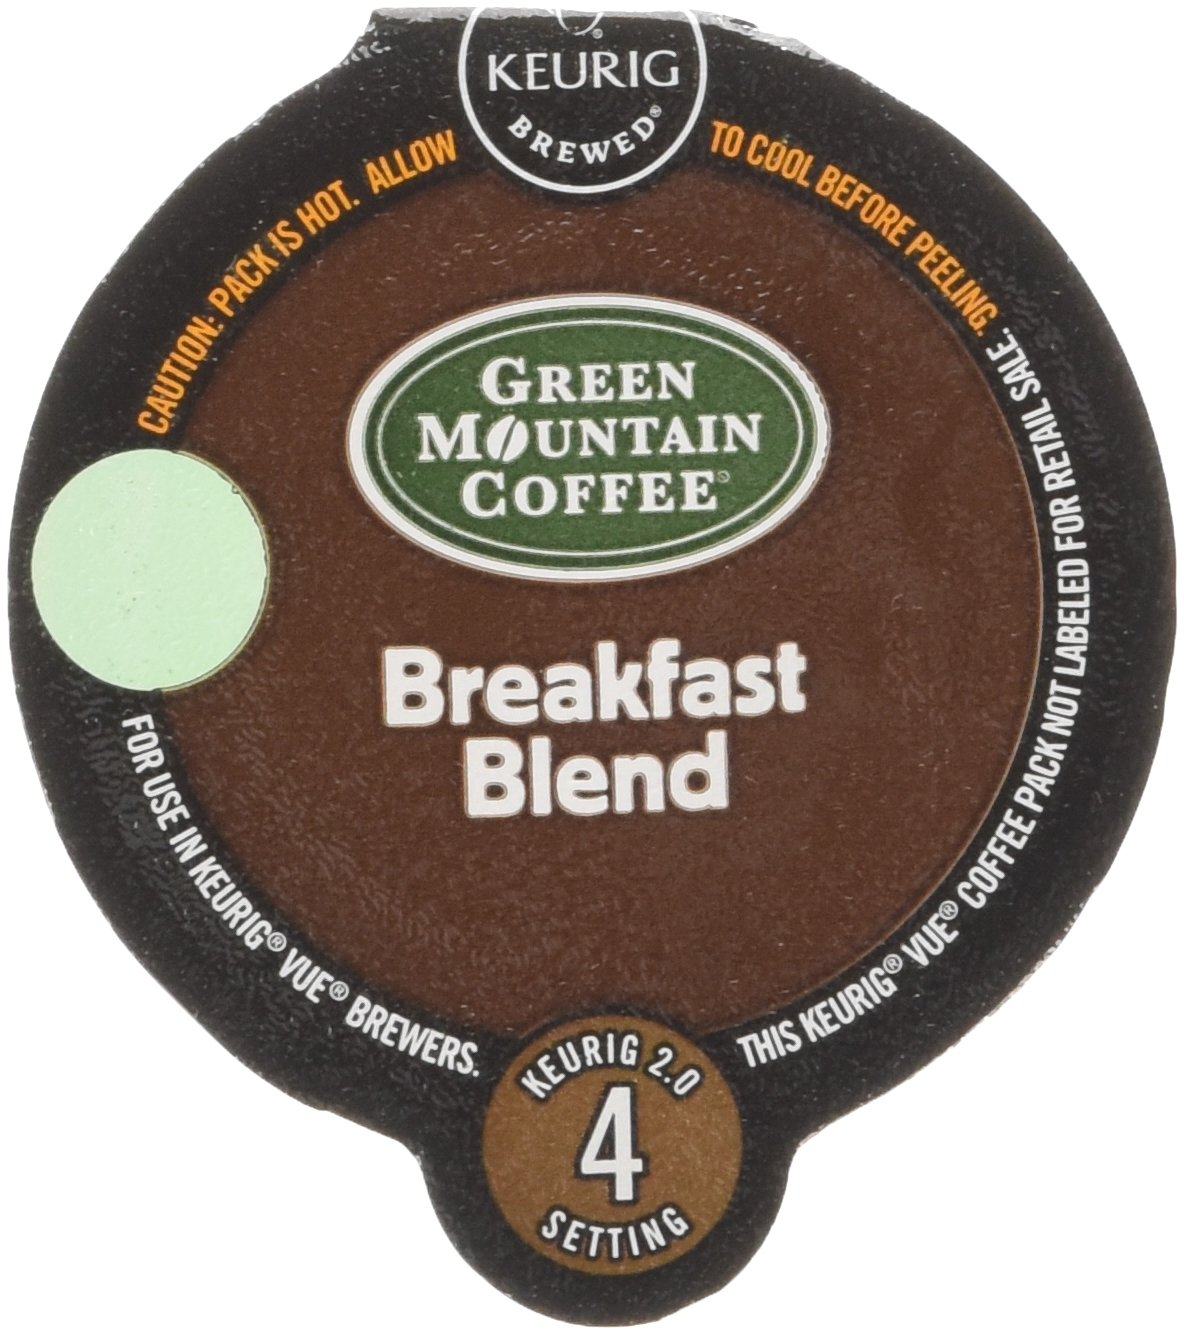 Green Mountain Coffee Breakfast Blend, Vue Cup Portion Pack for Keurig Vue Brewing Systems, 16 Count by Green Mountain Coffee Roasters (Image #1)